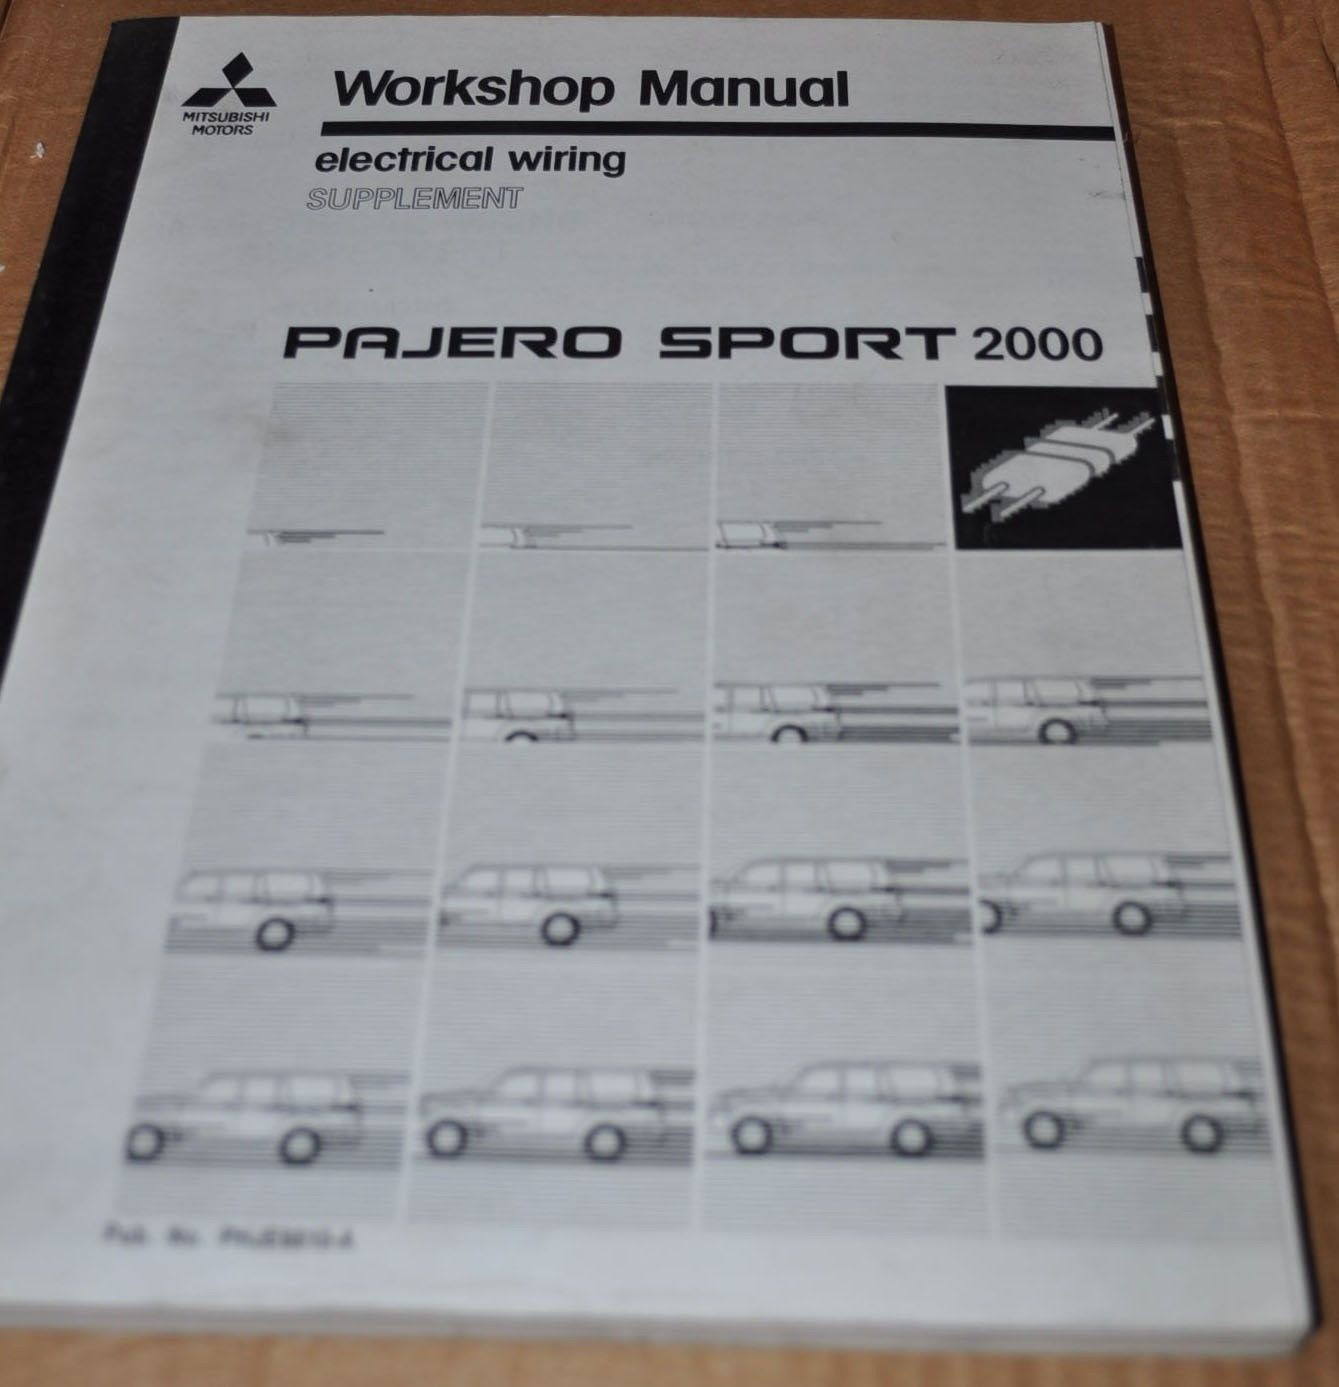 Mitsubishi Pajero Sport 2000 Electrical Wiring Supplement Workshop Manual  Book - AUTO BROCHURE